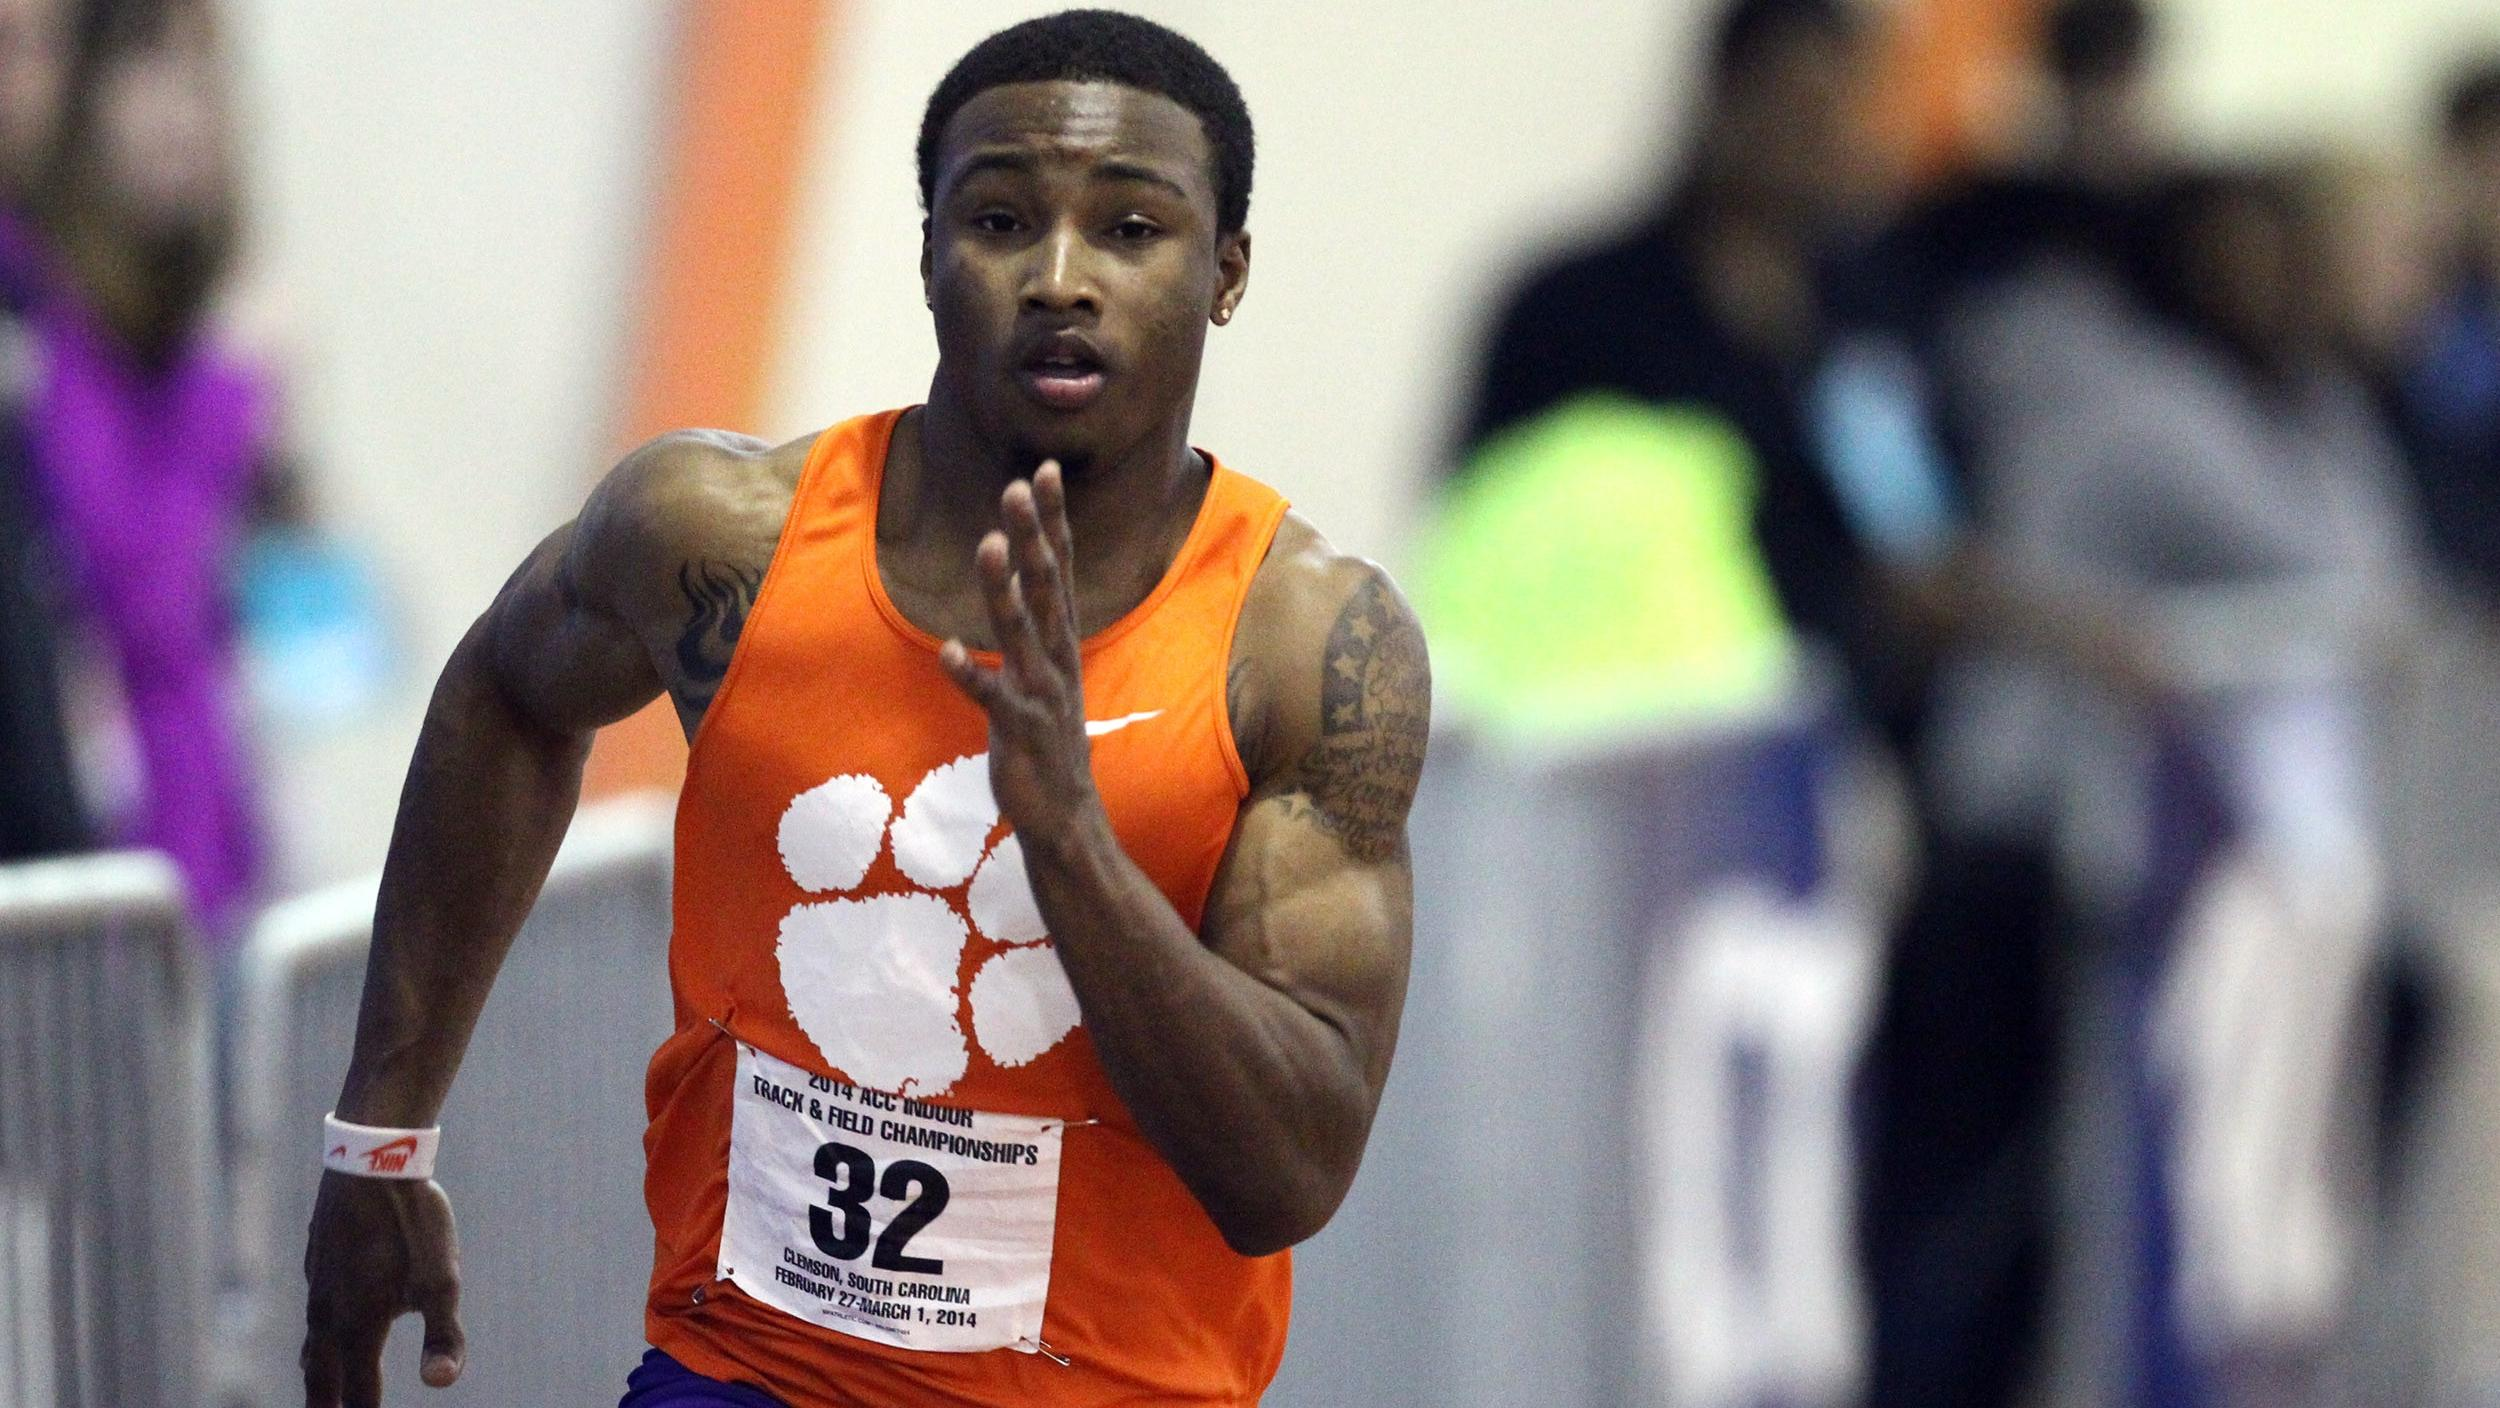 Hester, Land Extended Bids to NCAA Indoor Championships